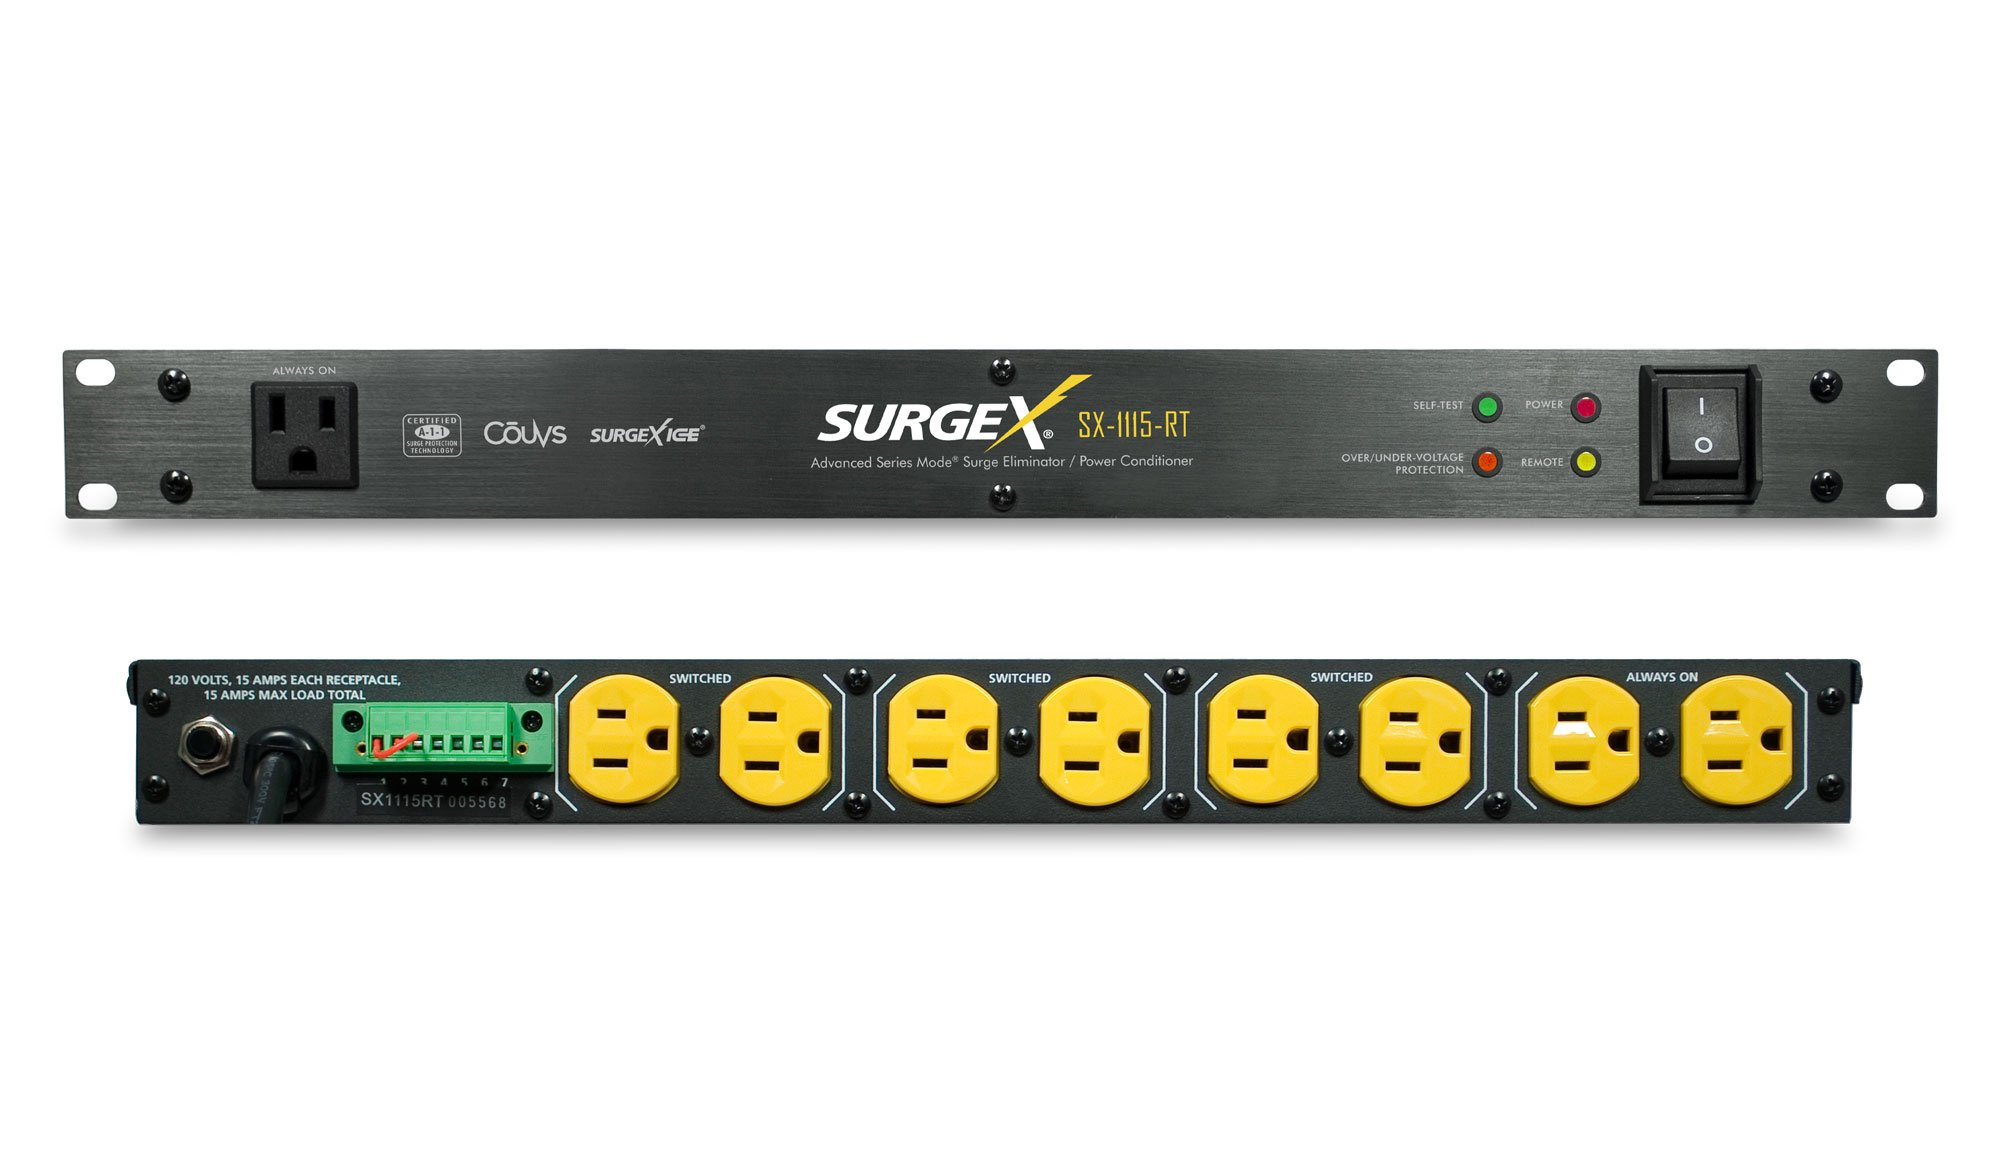 SurgeX SX-1115-RT TAA Rack Mount Surge Eliminator - Surge Protector/Power Conditioner for Audio, Video, Security & IT - 120 Volt/15 Amp, 1U, TAA Compliant